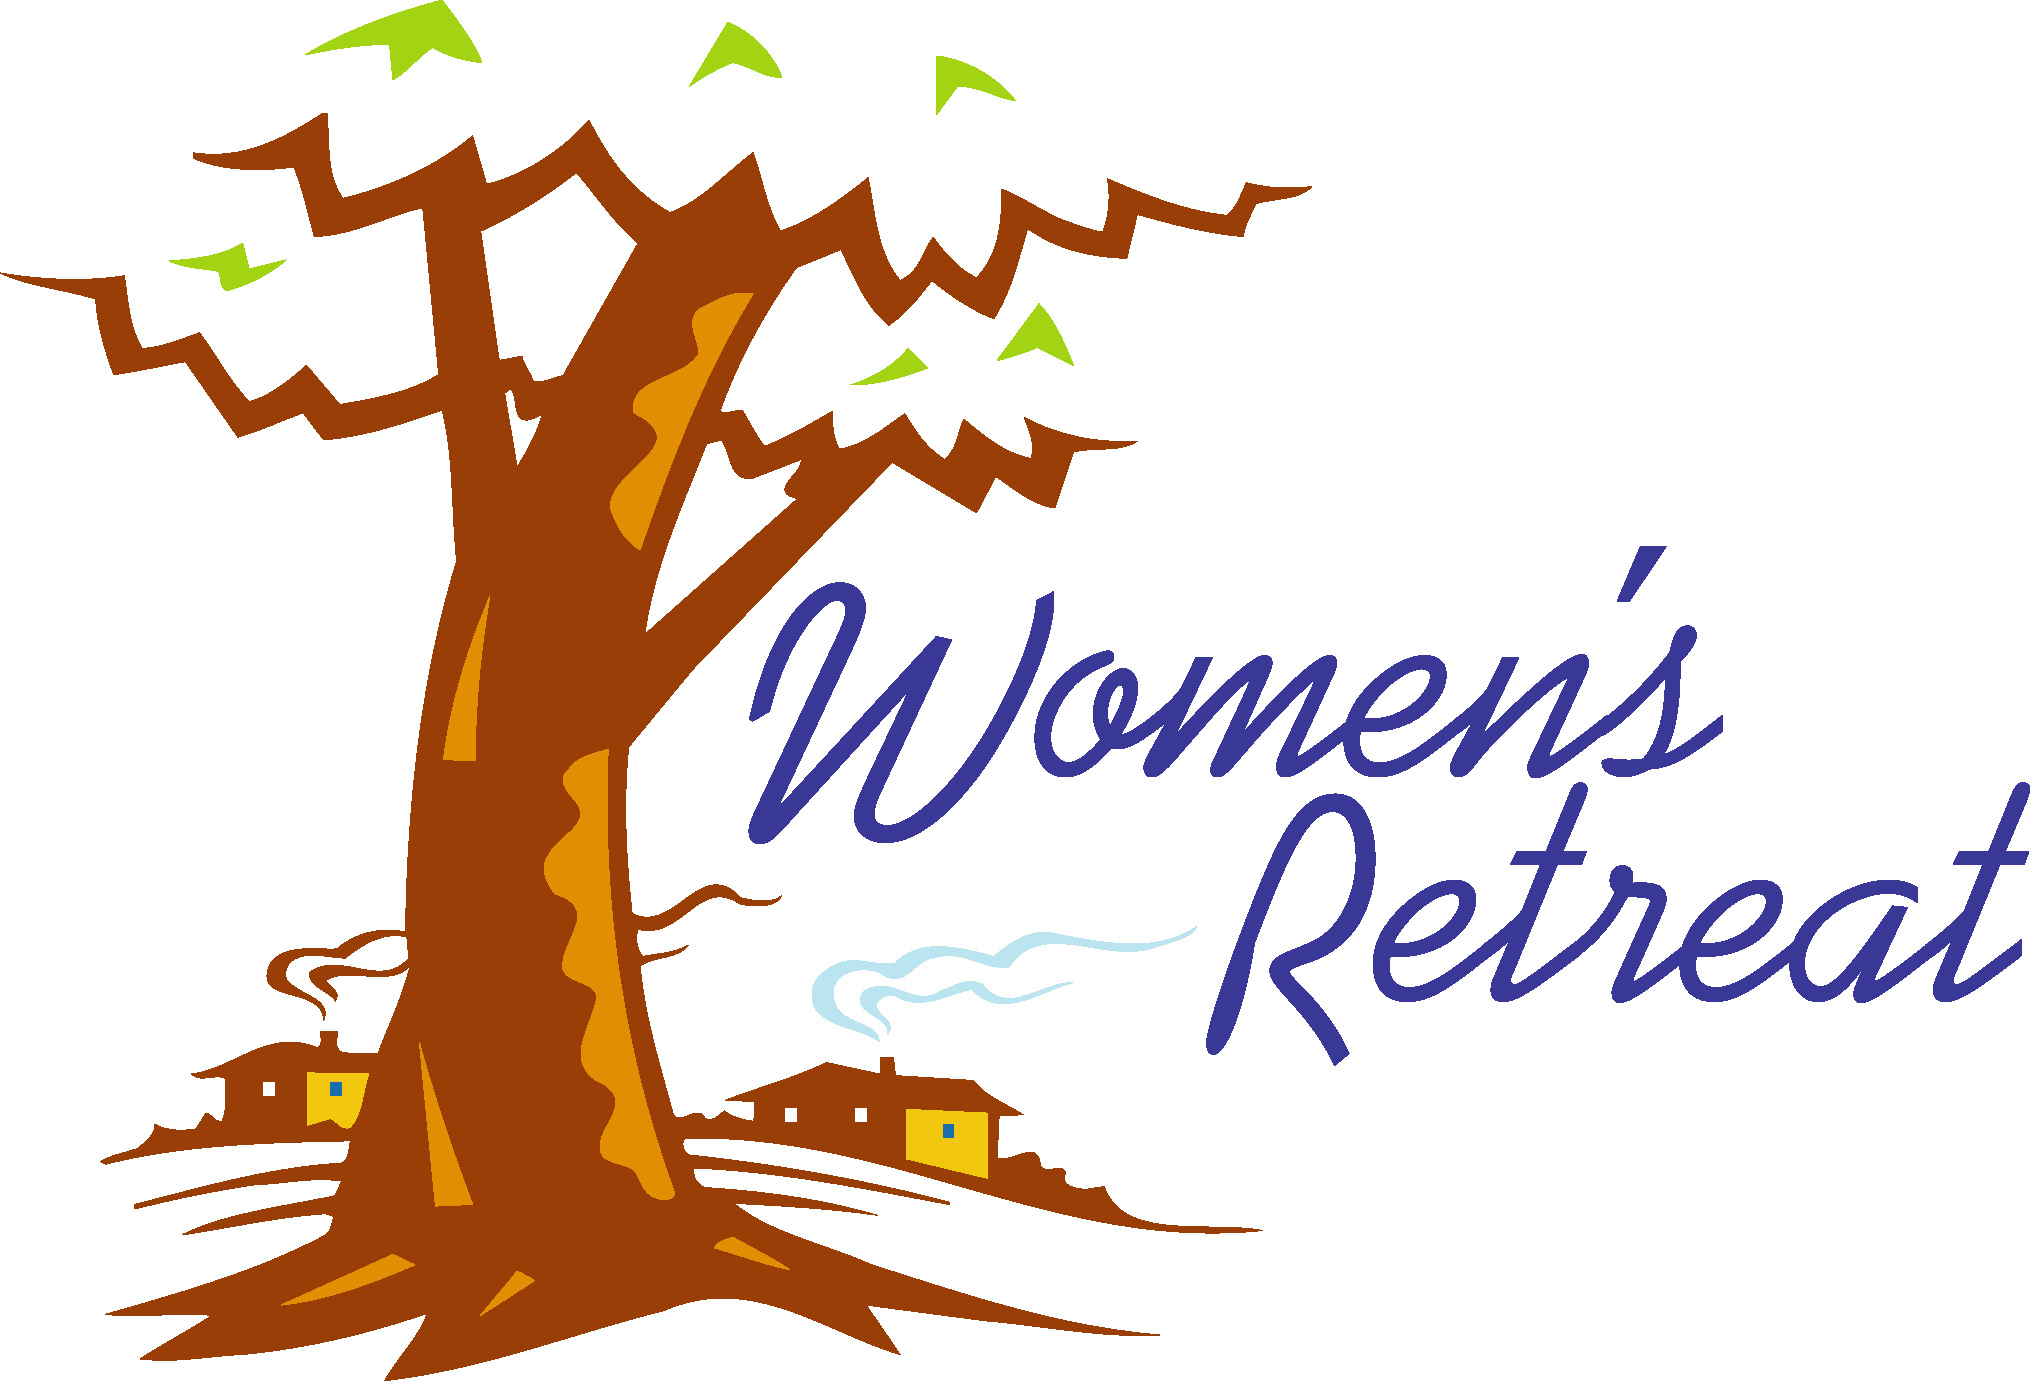 Free Women's Retreat Cliparts, Download Free Clip Art, Free Clip Art.